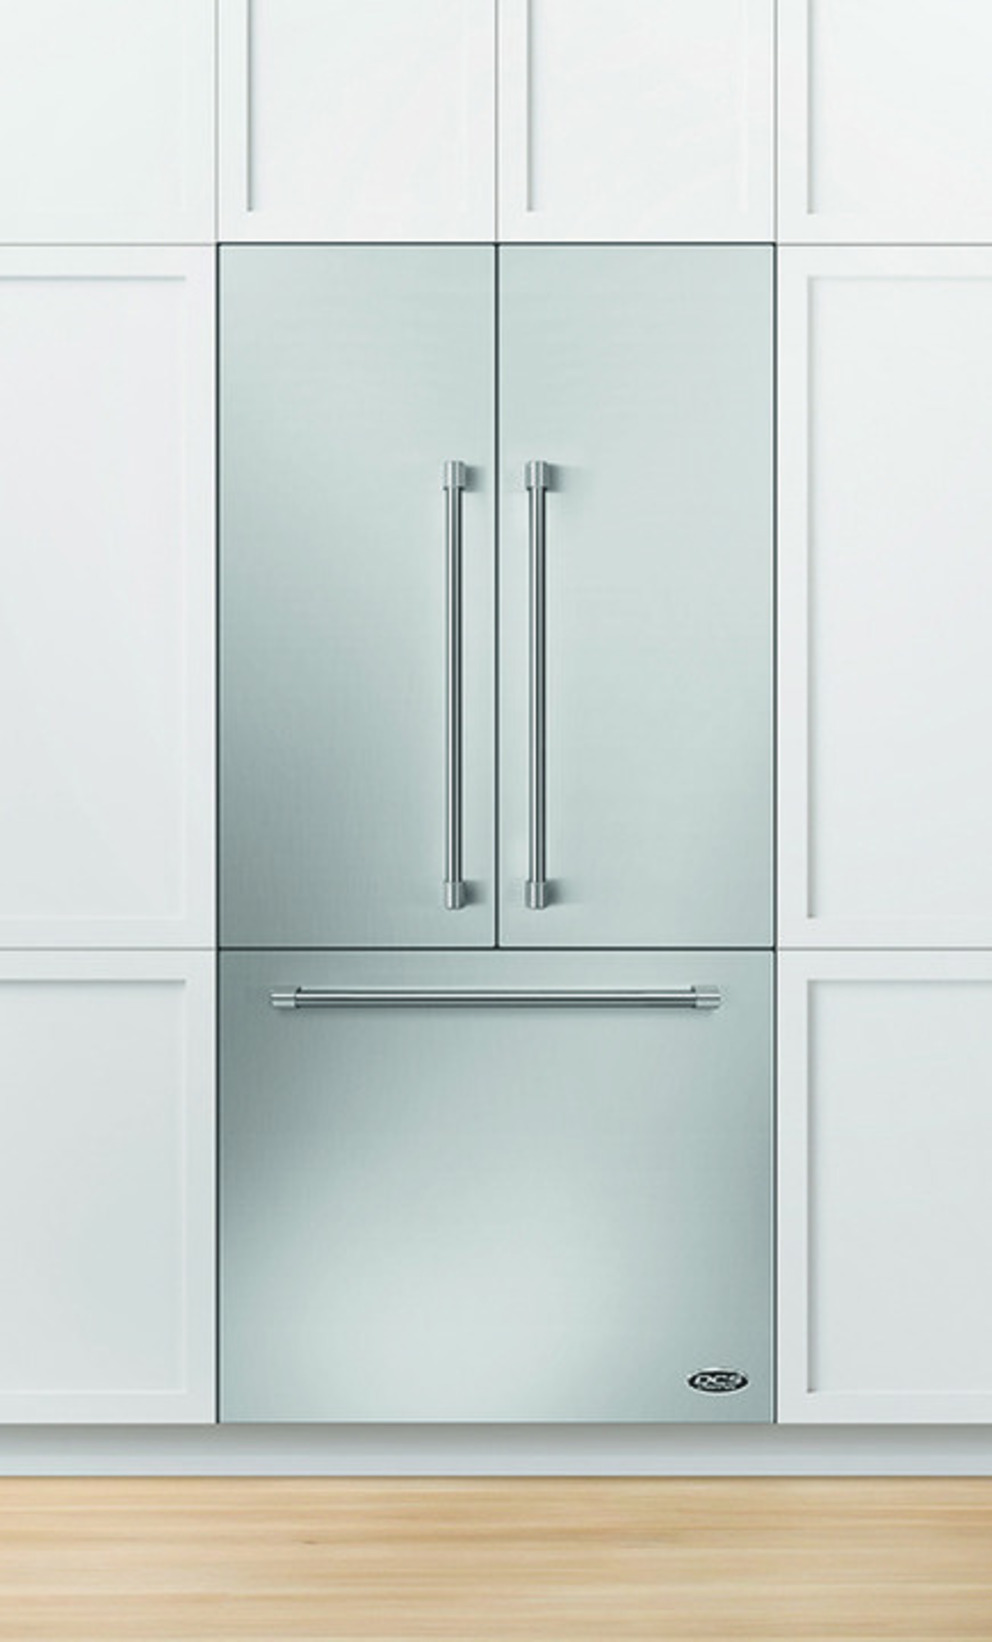 Fridges DCS RS36A80JC1 + RD3680C (80'' DCS)